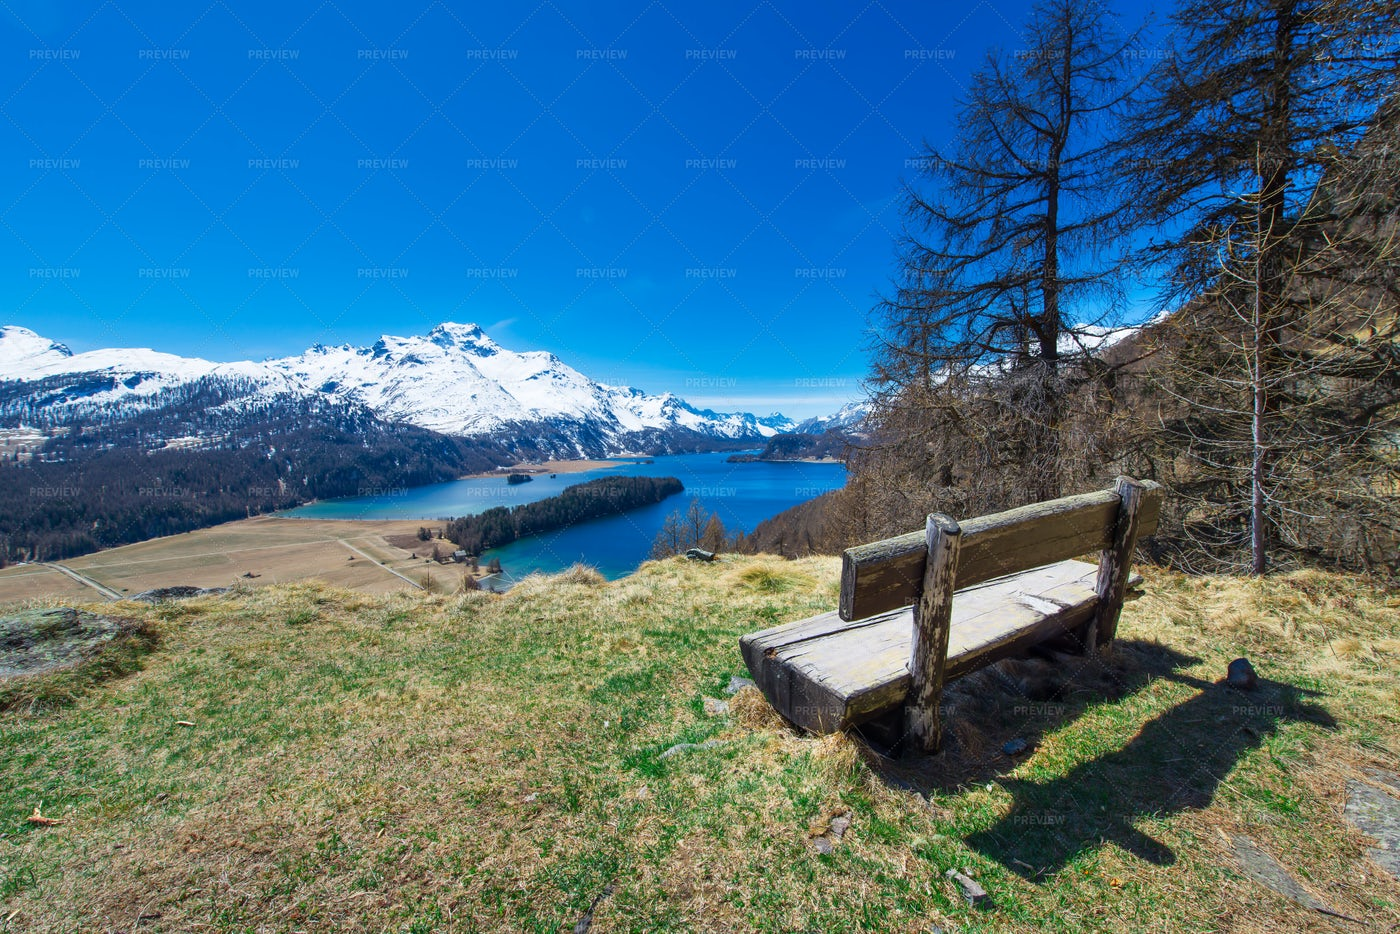 Wooden Bench In The Landscape: Stock Photos